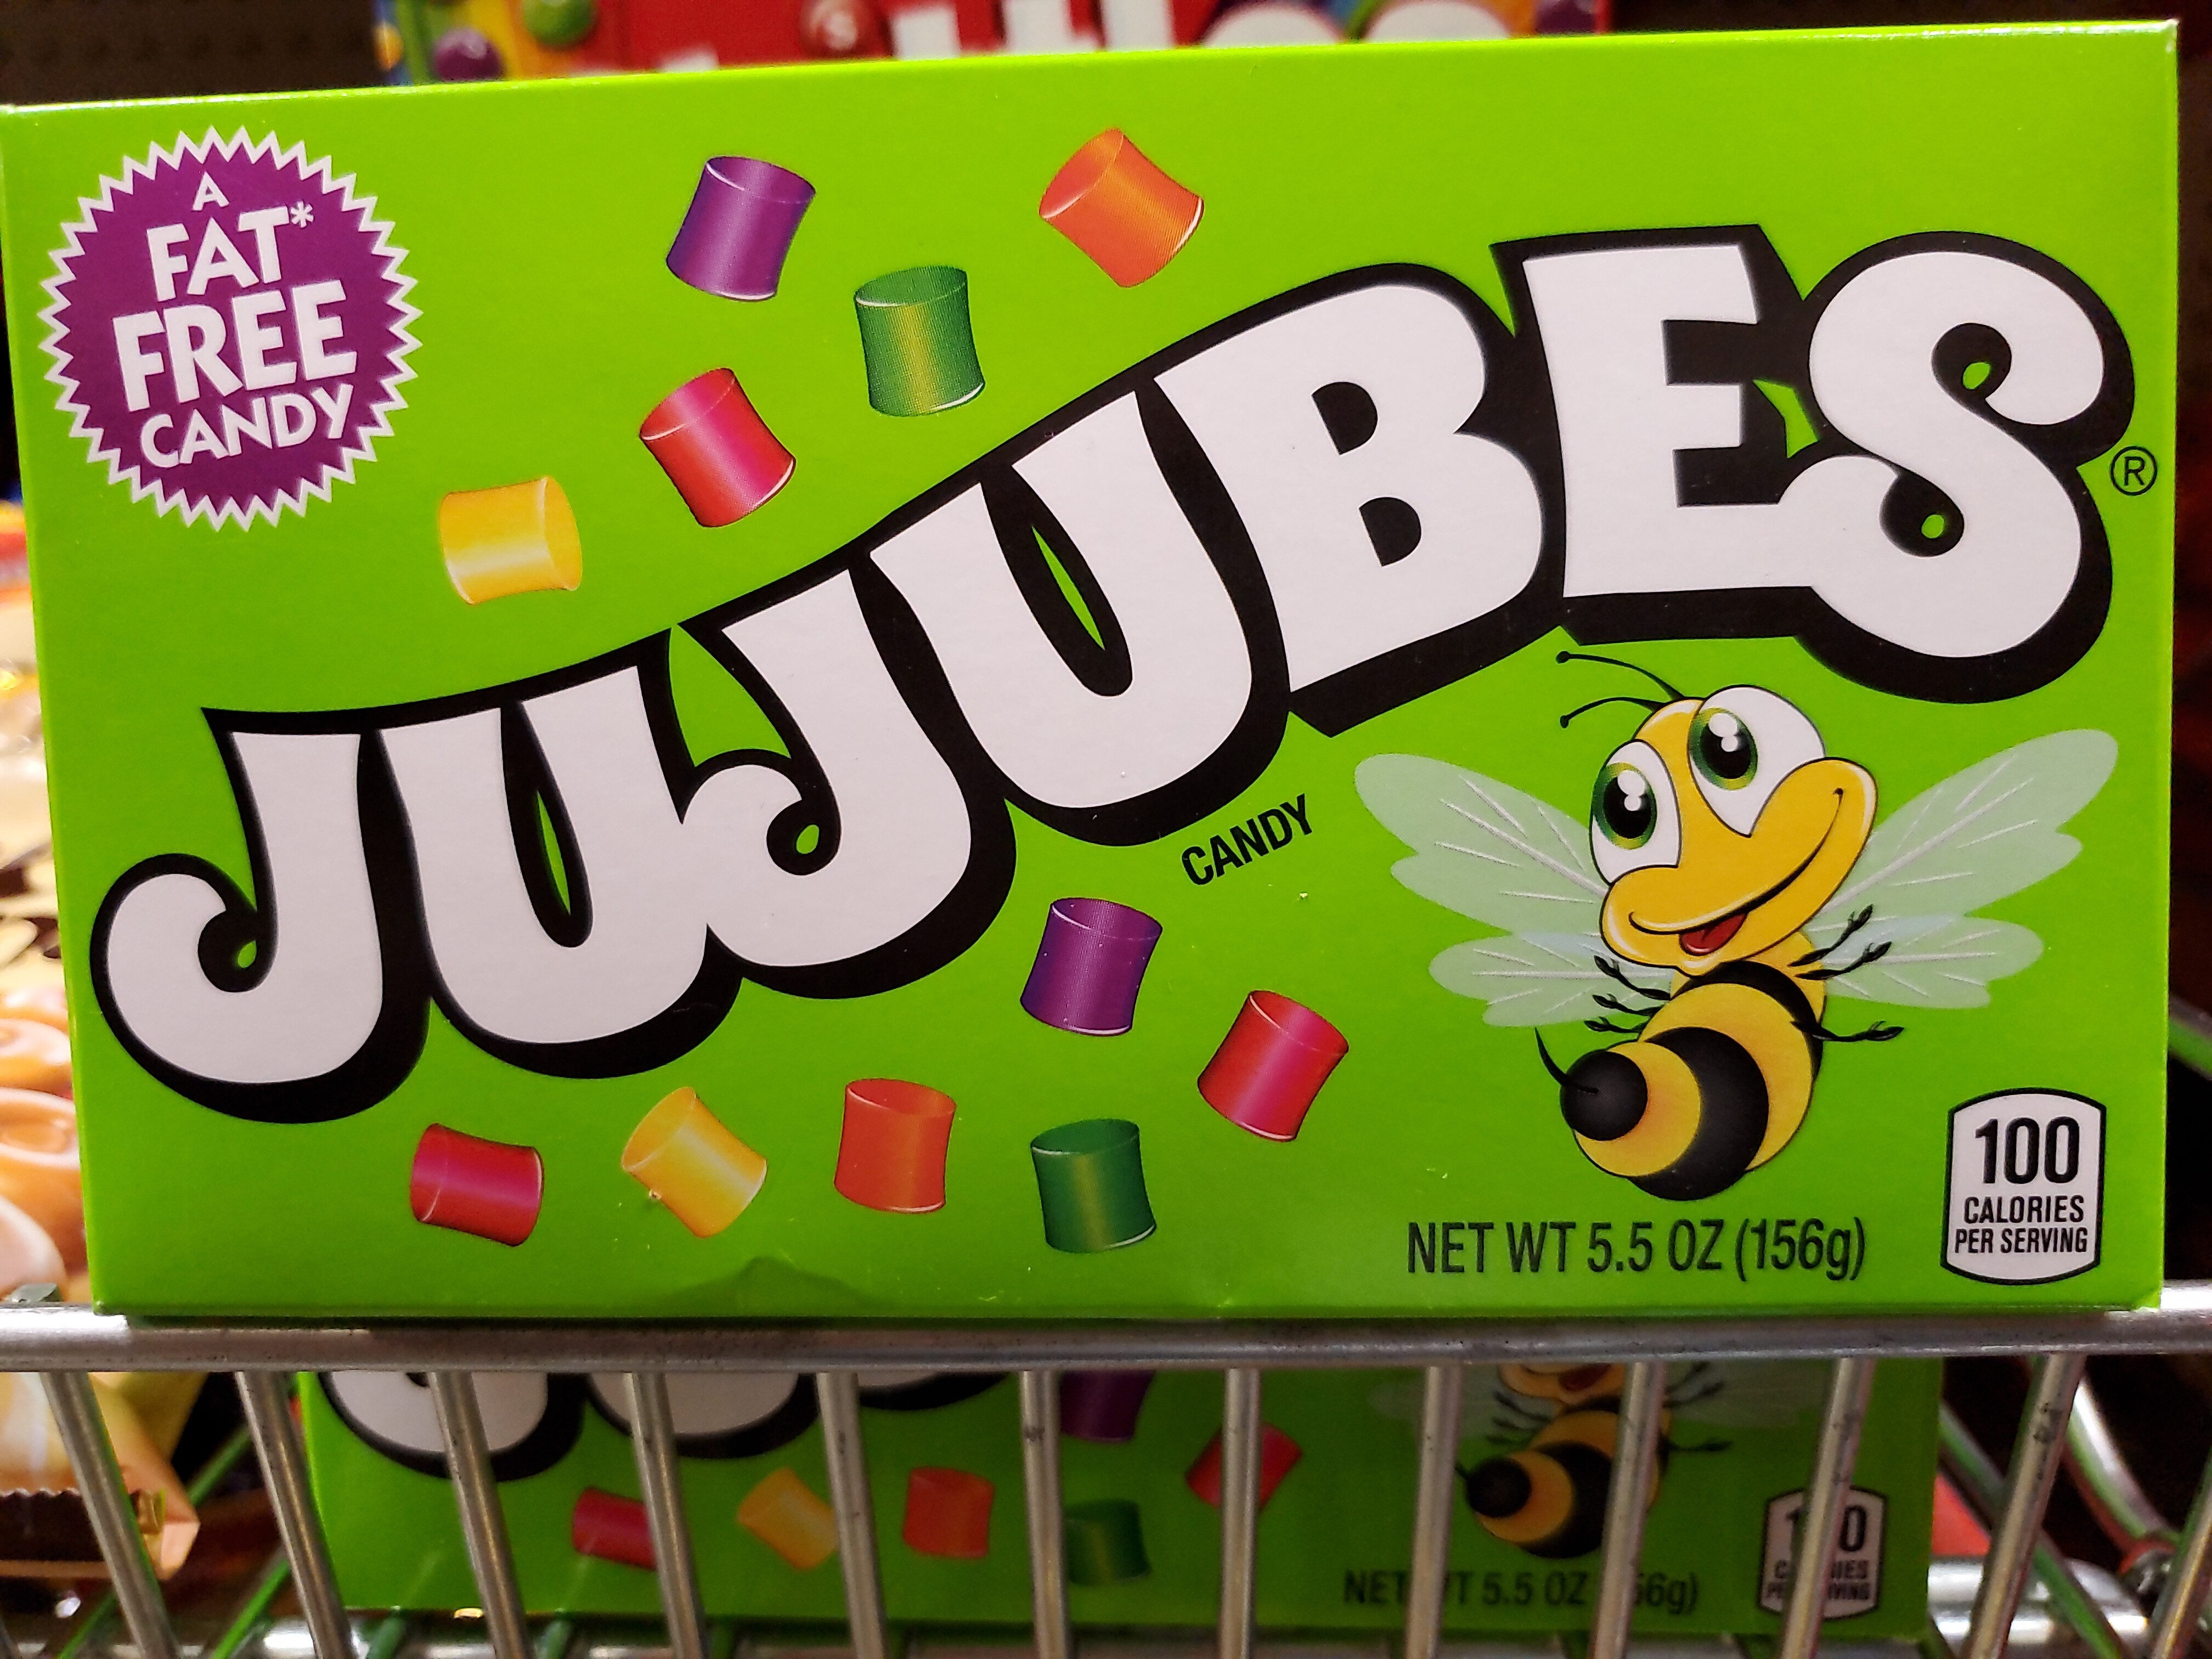 Heide, Jujubes, Candy - Product